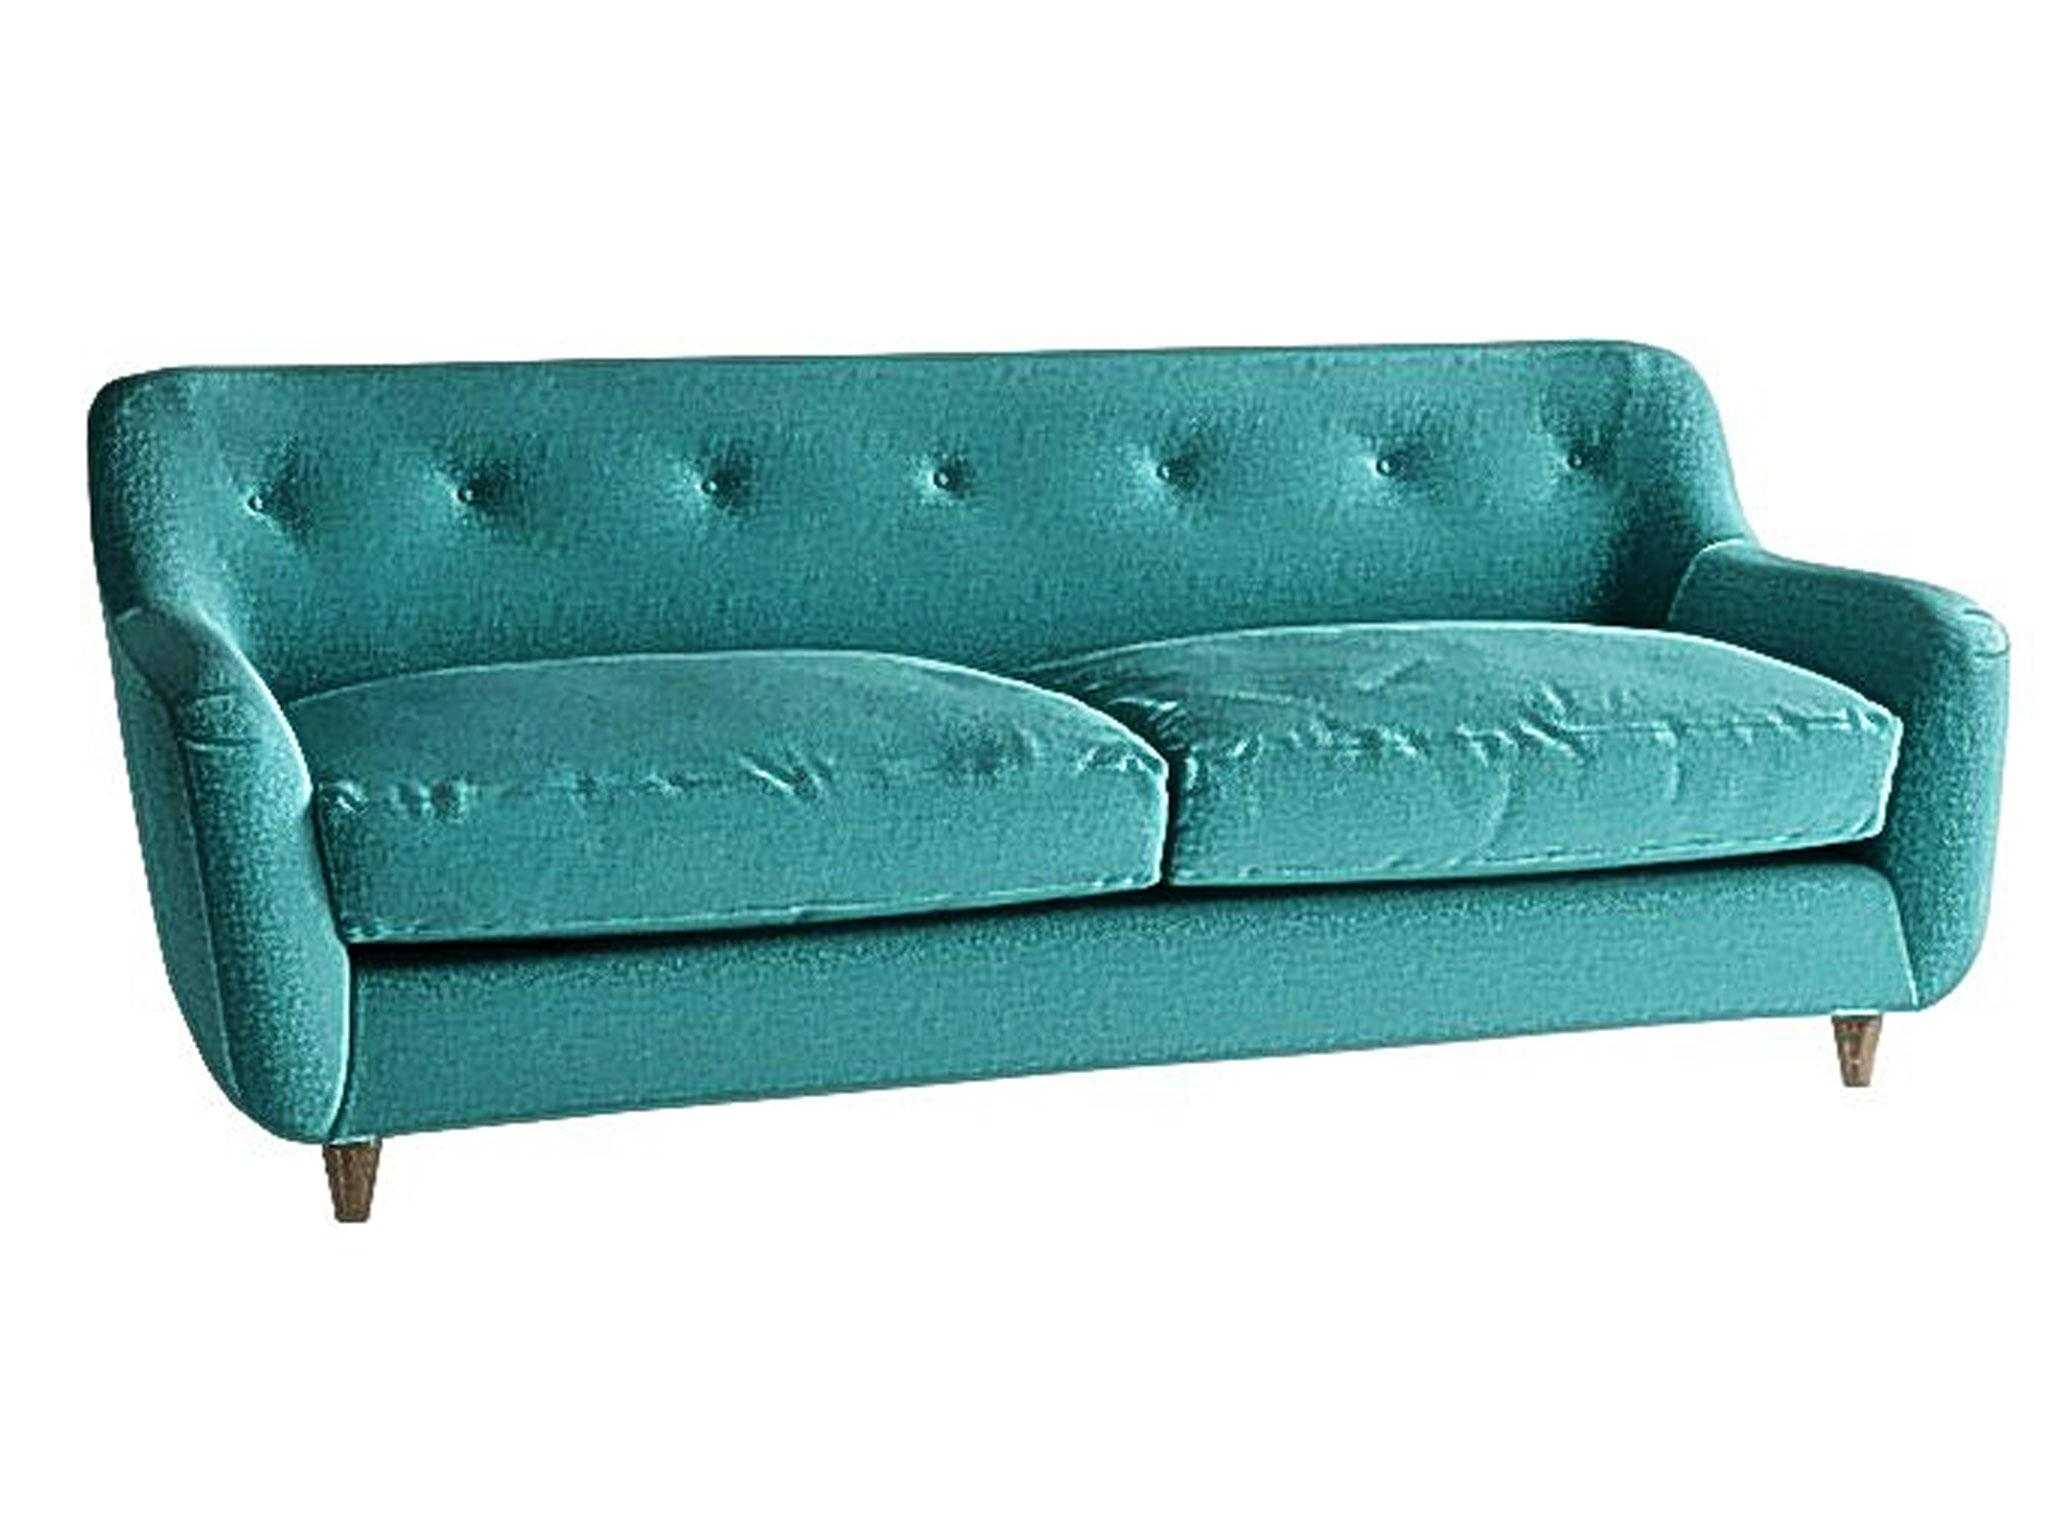 funky sofas for sale uk refilling sofa cushions and chairs the decorating files